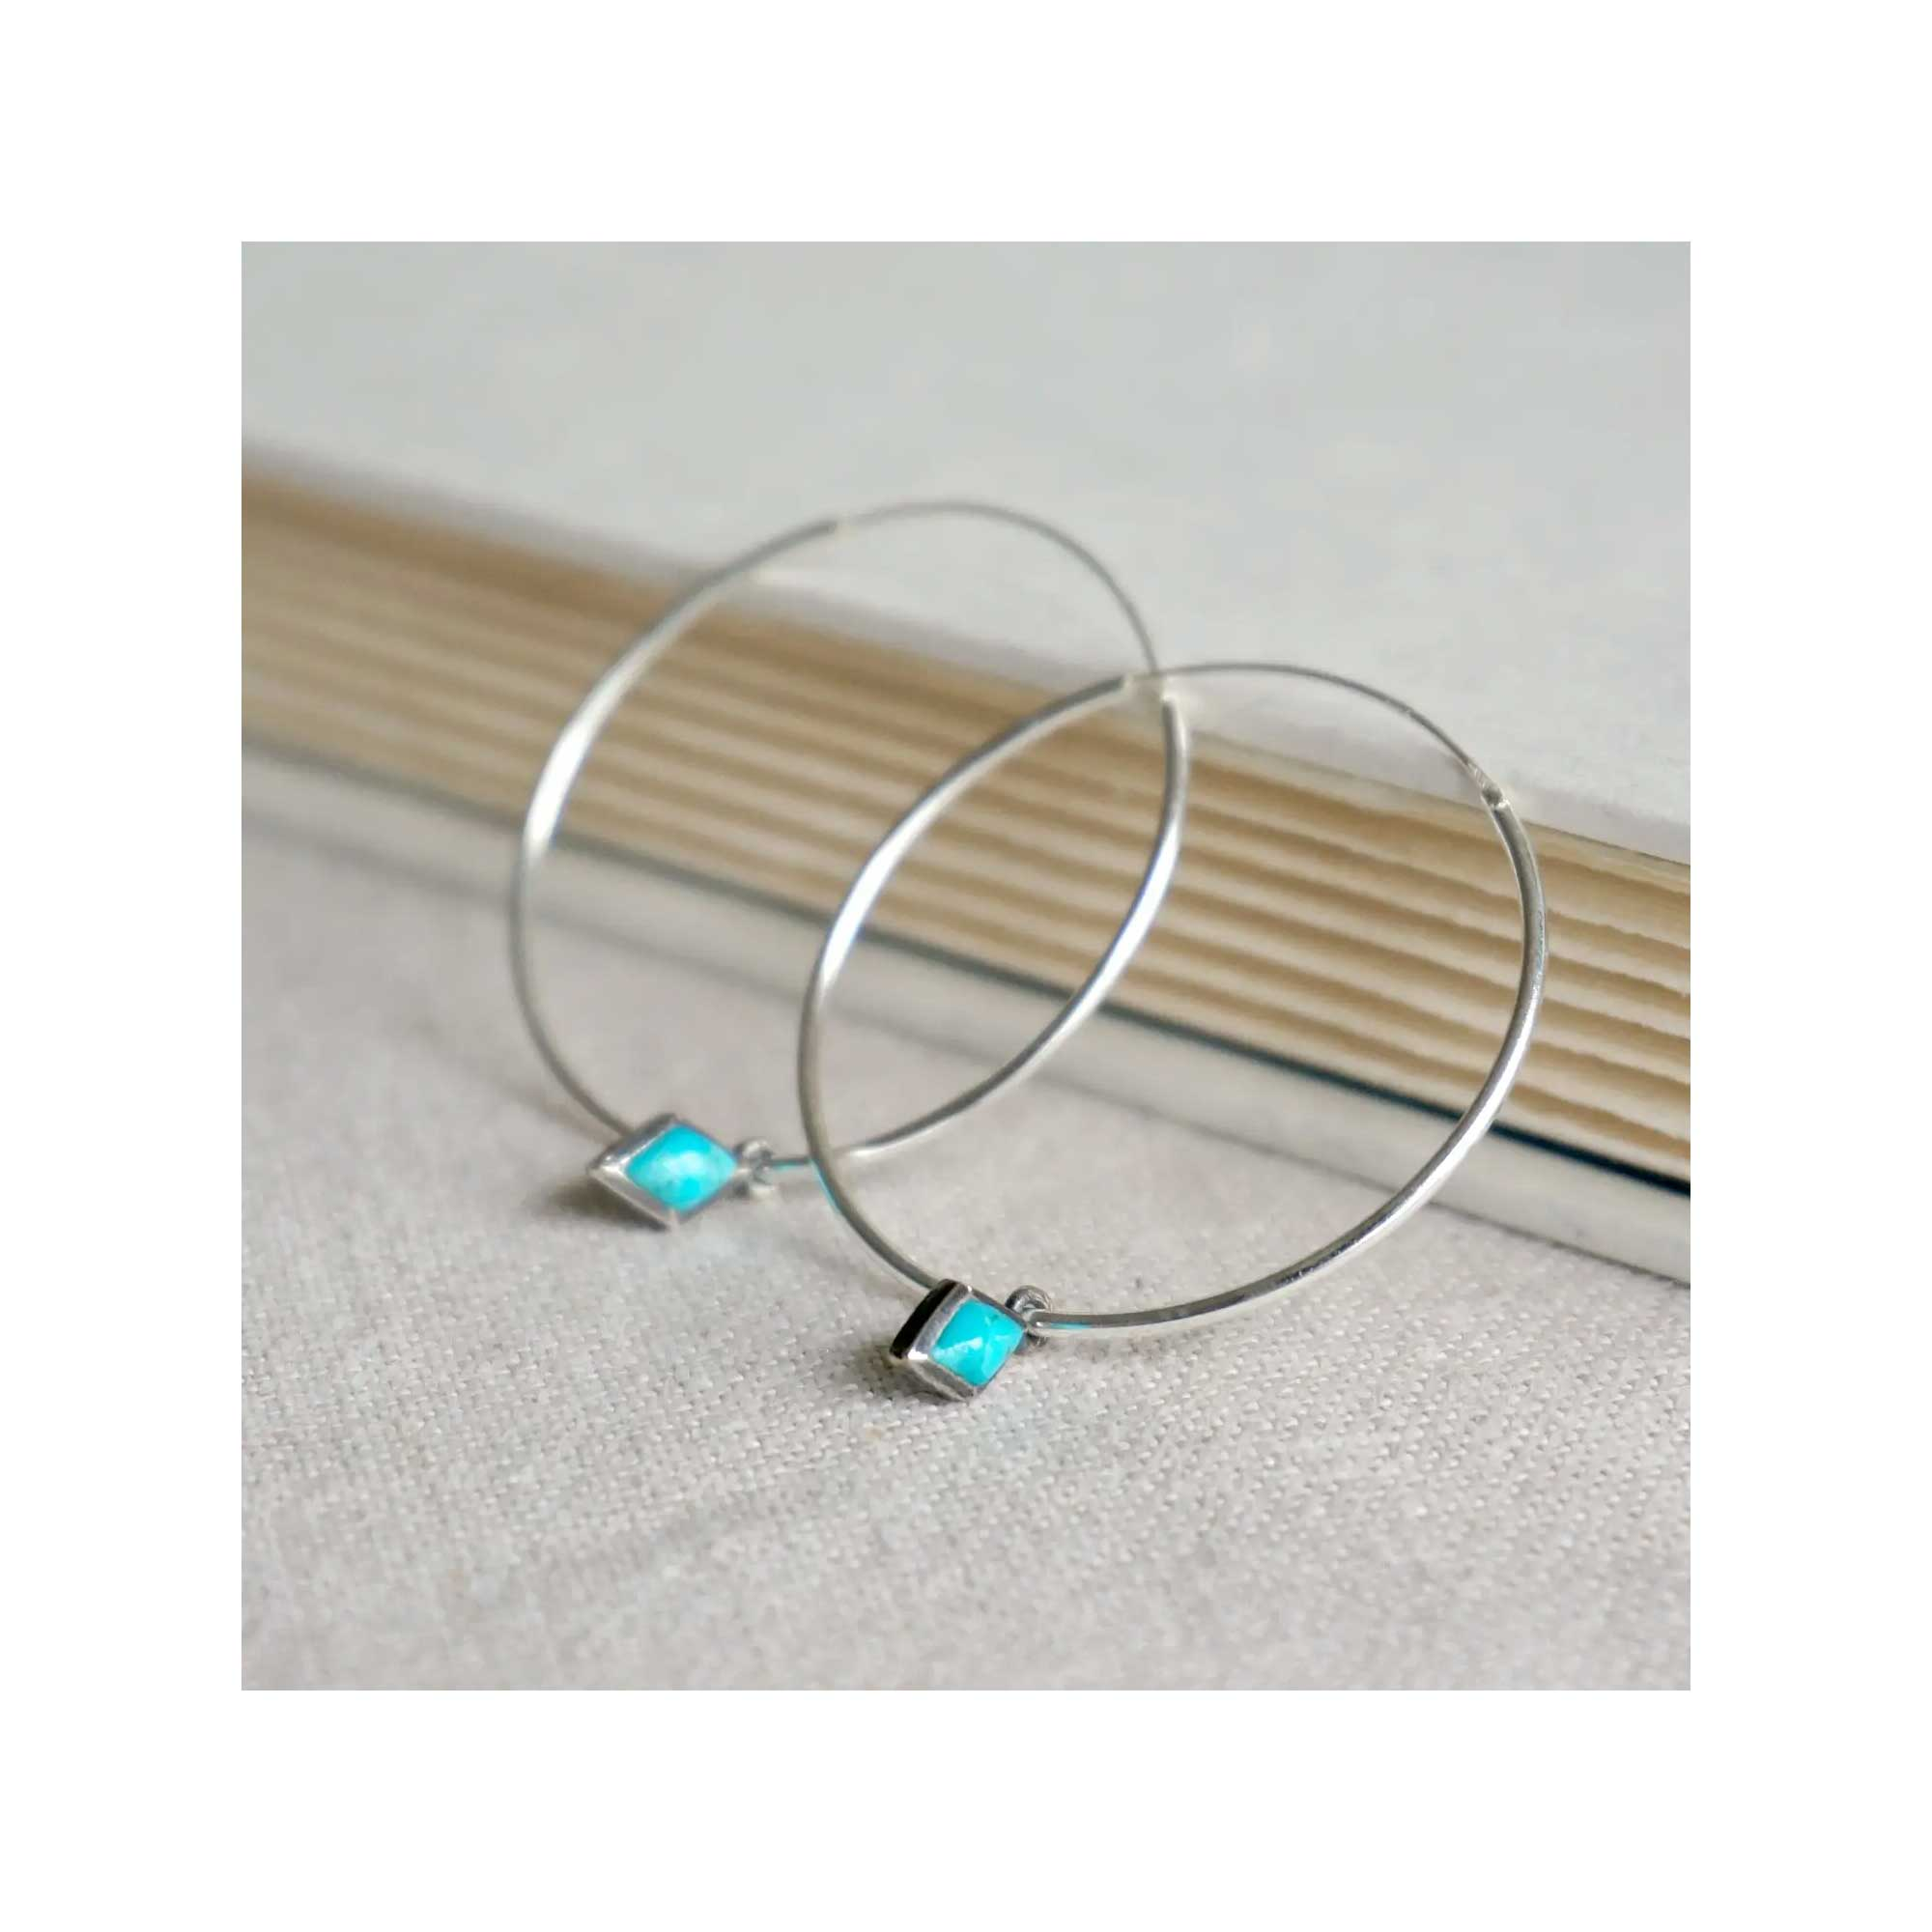 Sowell Jewelry Dior Turquoise Hoop Earrings